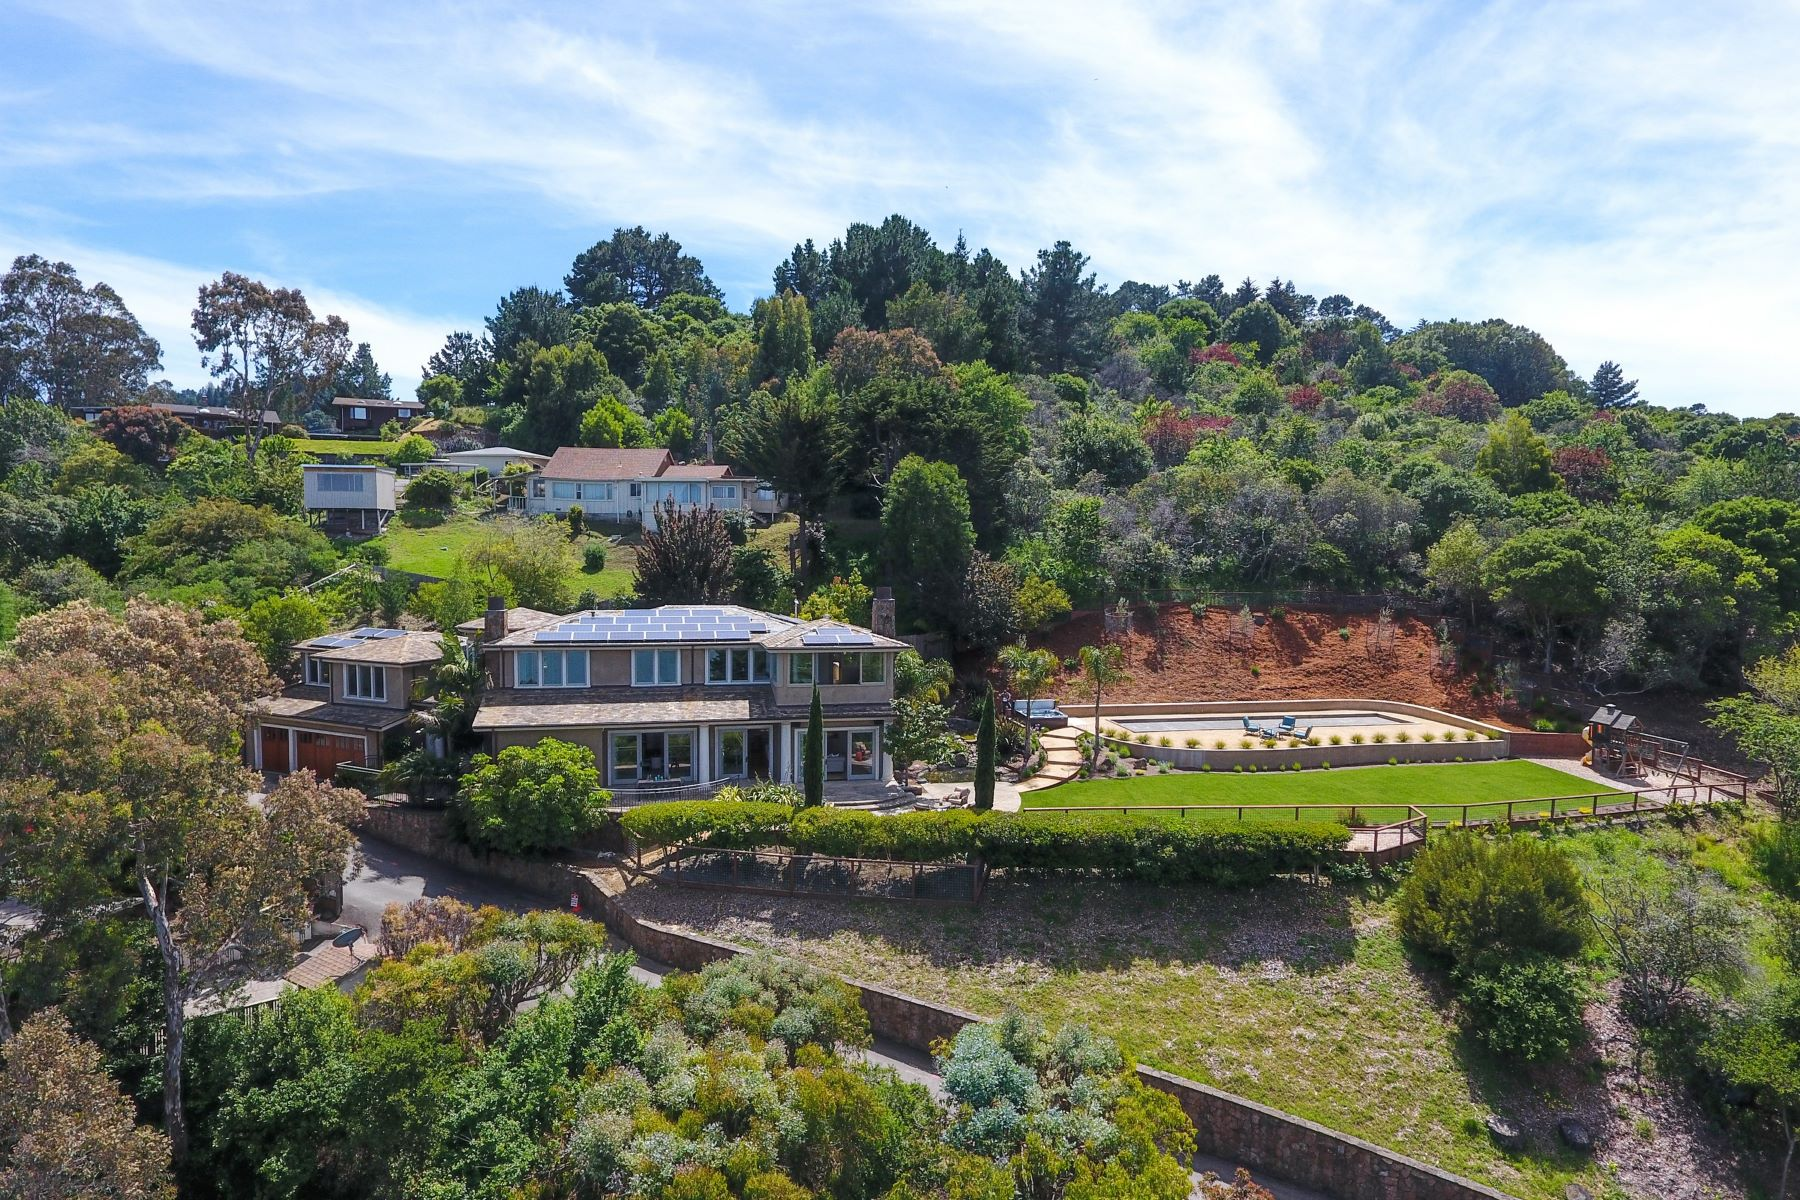 Single Family Home for Sale at Stunning Private Villa in Tiburon! 4185 Paradise Dr Tiburon, California 94920 United States